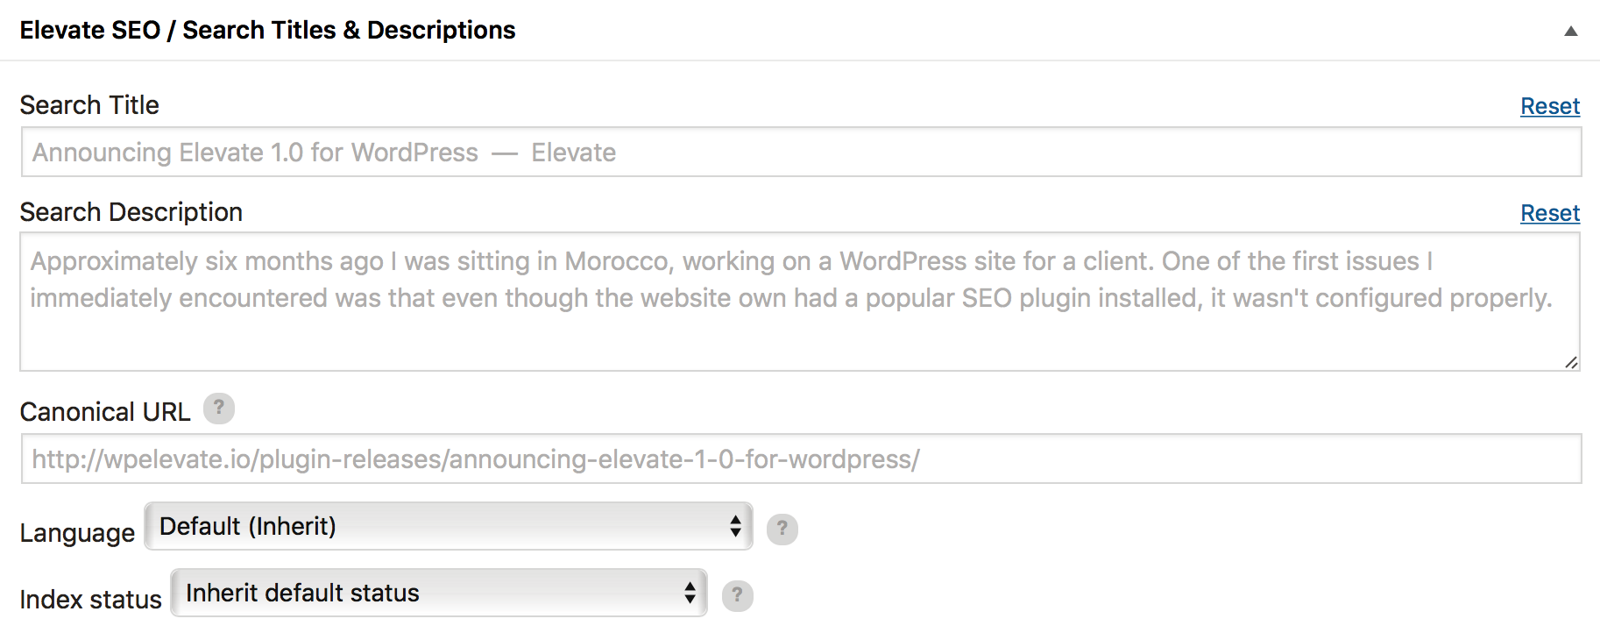 Elevate SEO plugin for WordPress, Configuration Wizard